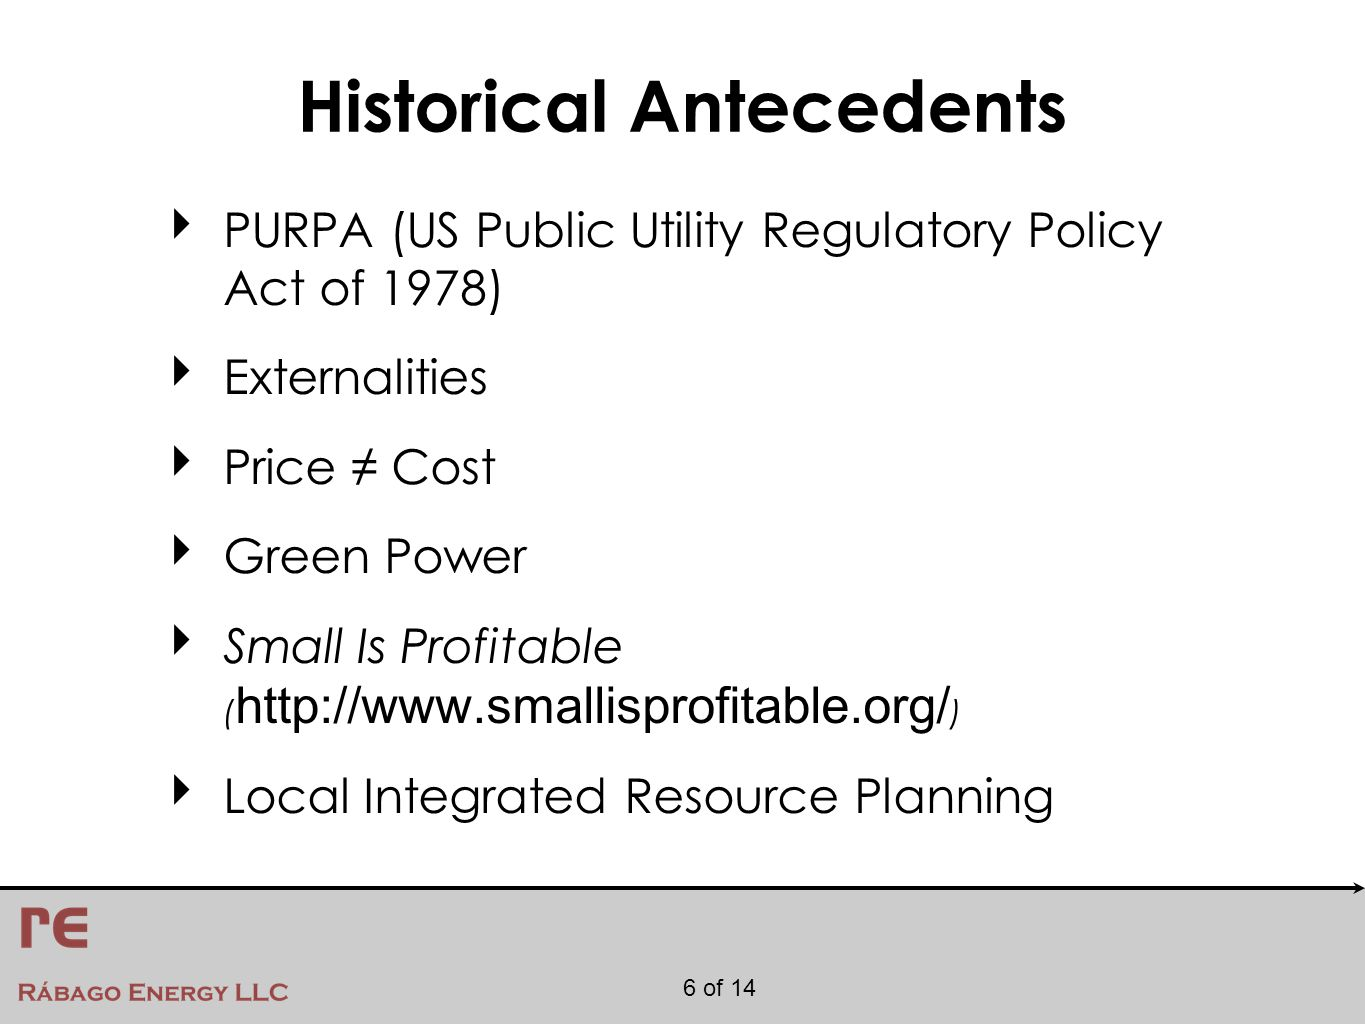 6 of 14 Historical Antecedents ‣ PURPA (US Public Utility Regulatory Policy Act of 1978) ‣ Externalities ‣ Price ≠ Cost ‣ Green Power ‣ Small Is Profitable ( http://www.smallisprofitable.org/ ) ‣ Local Integrated Resource Planning